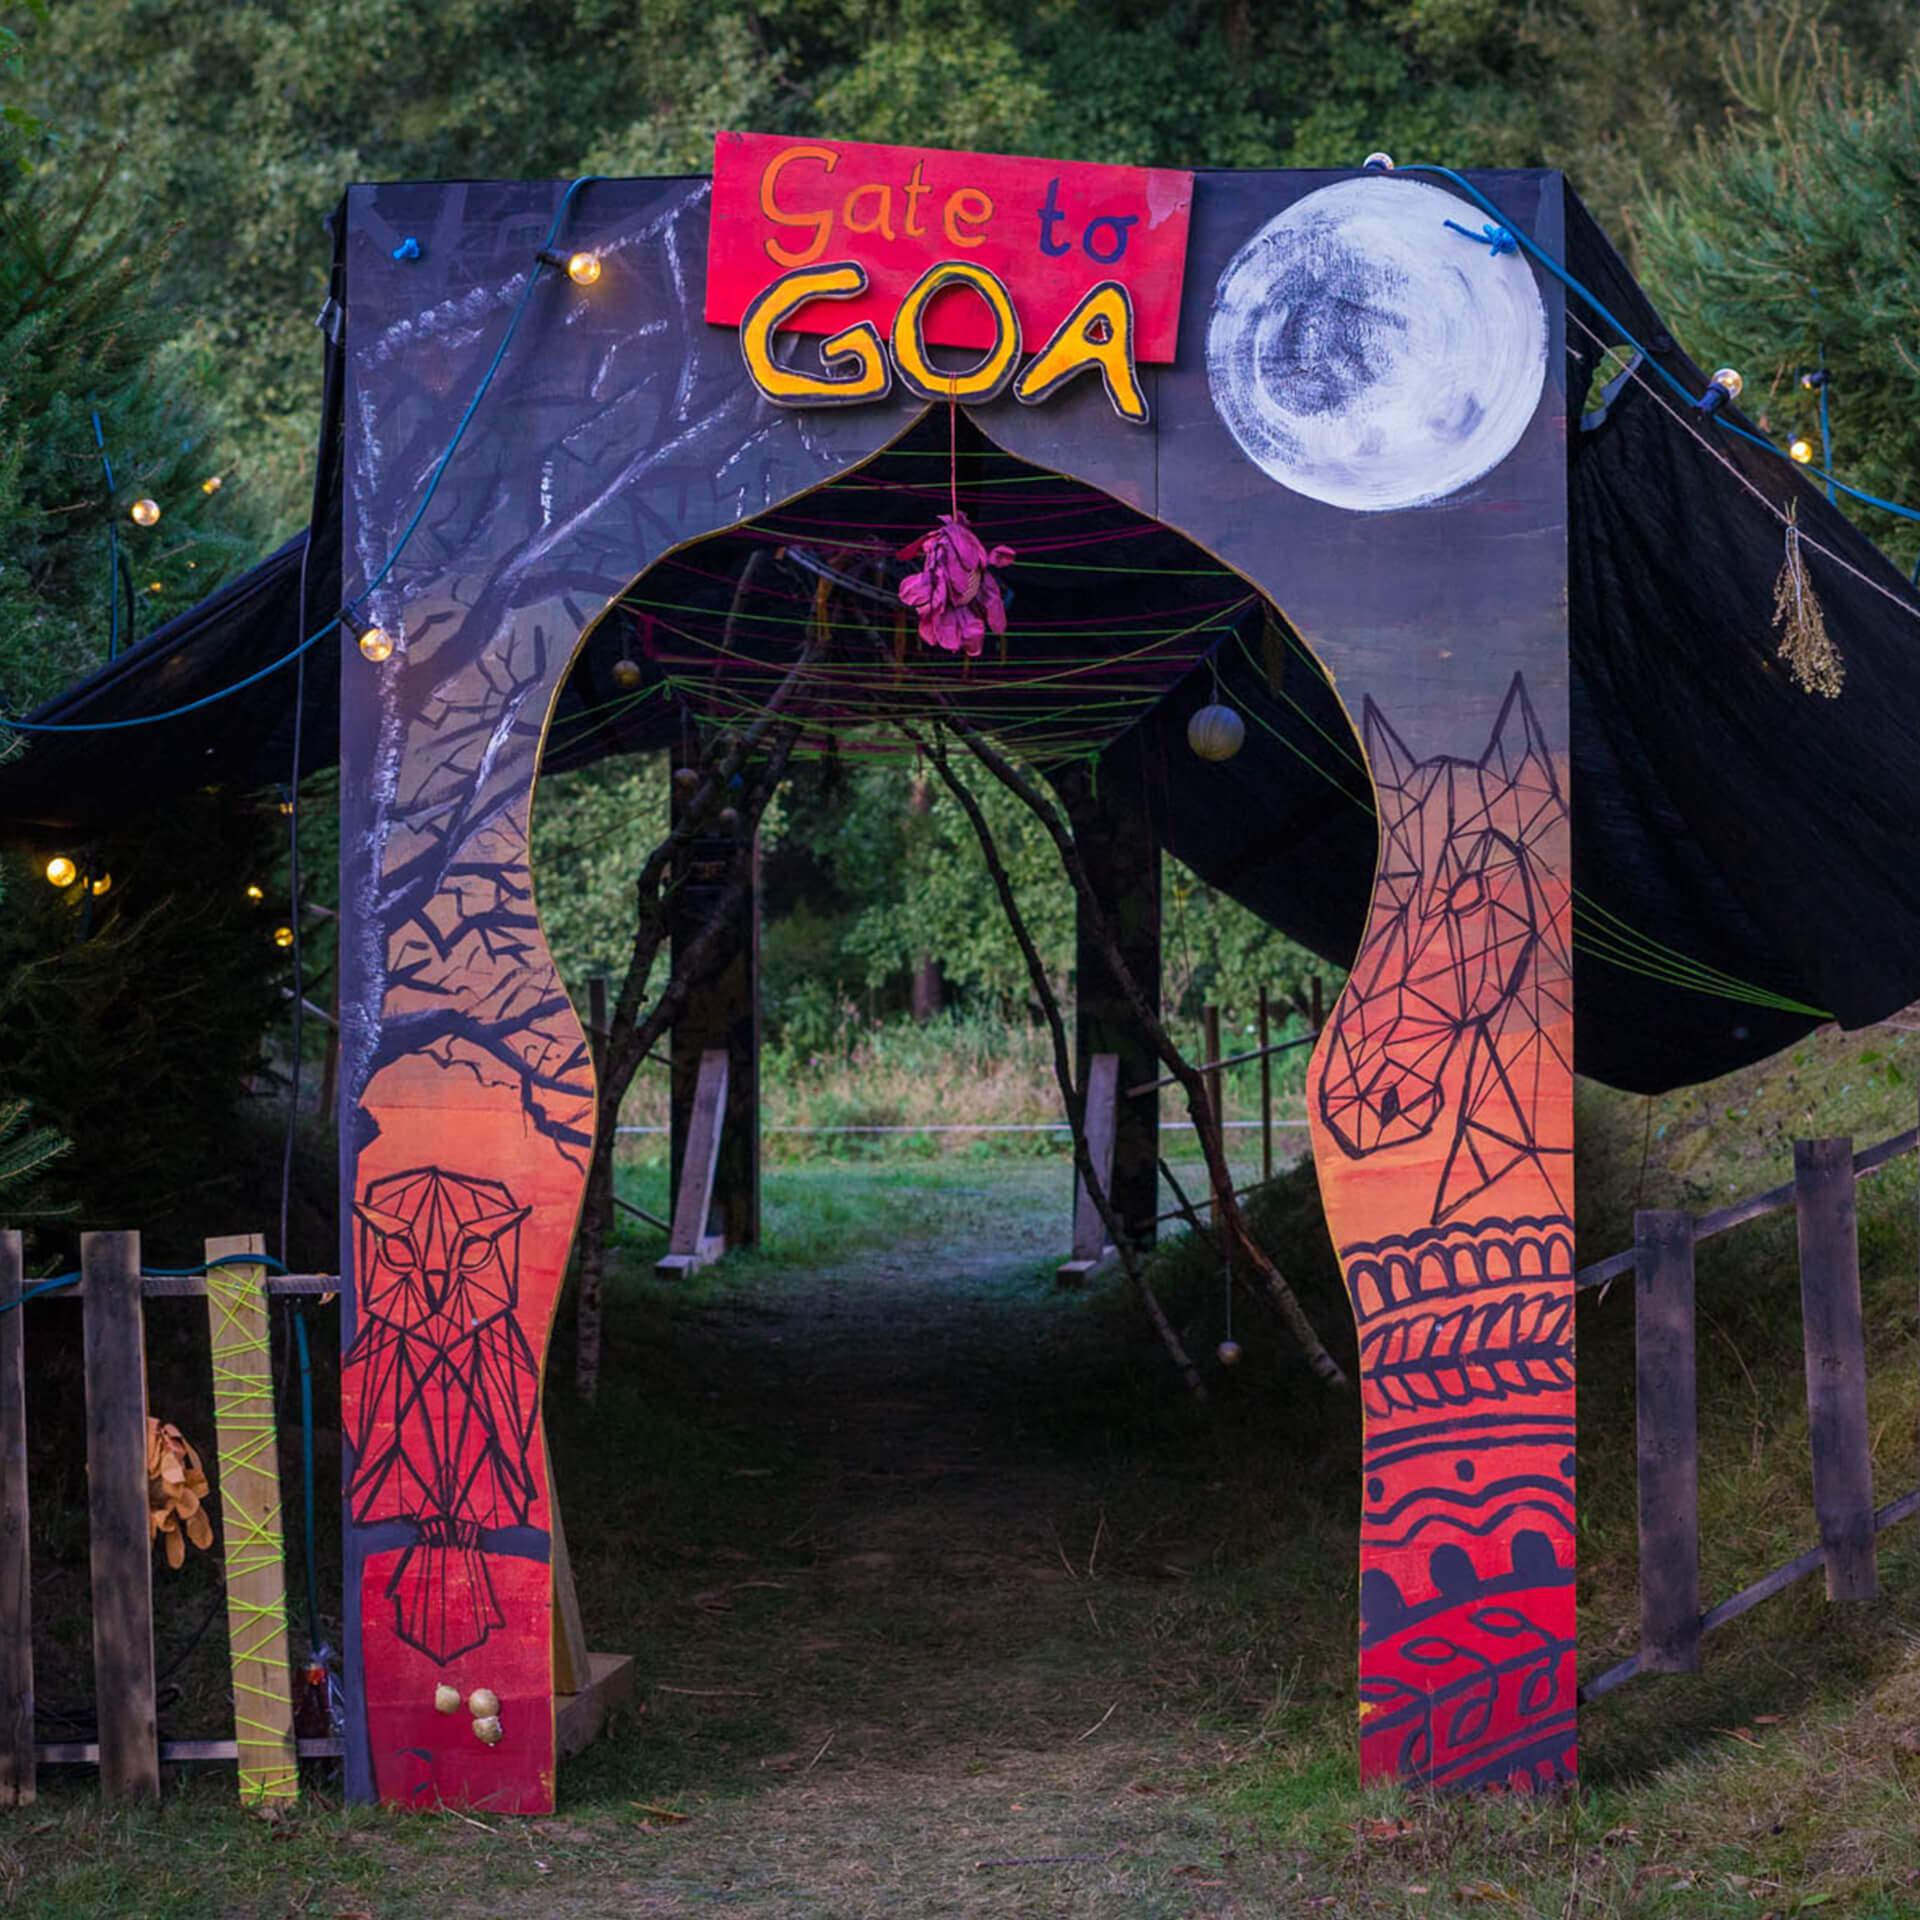 Gate to Goa 2018